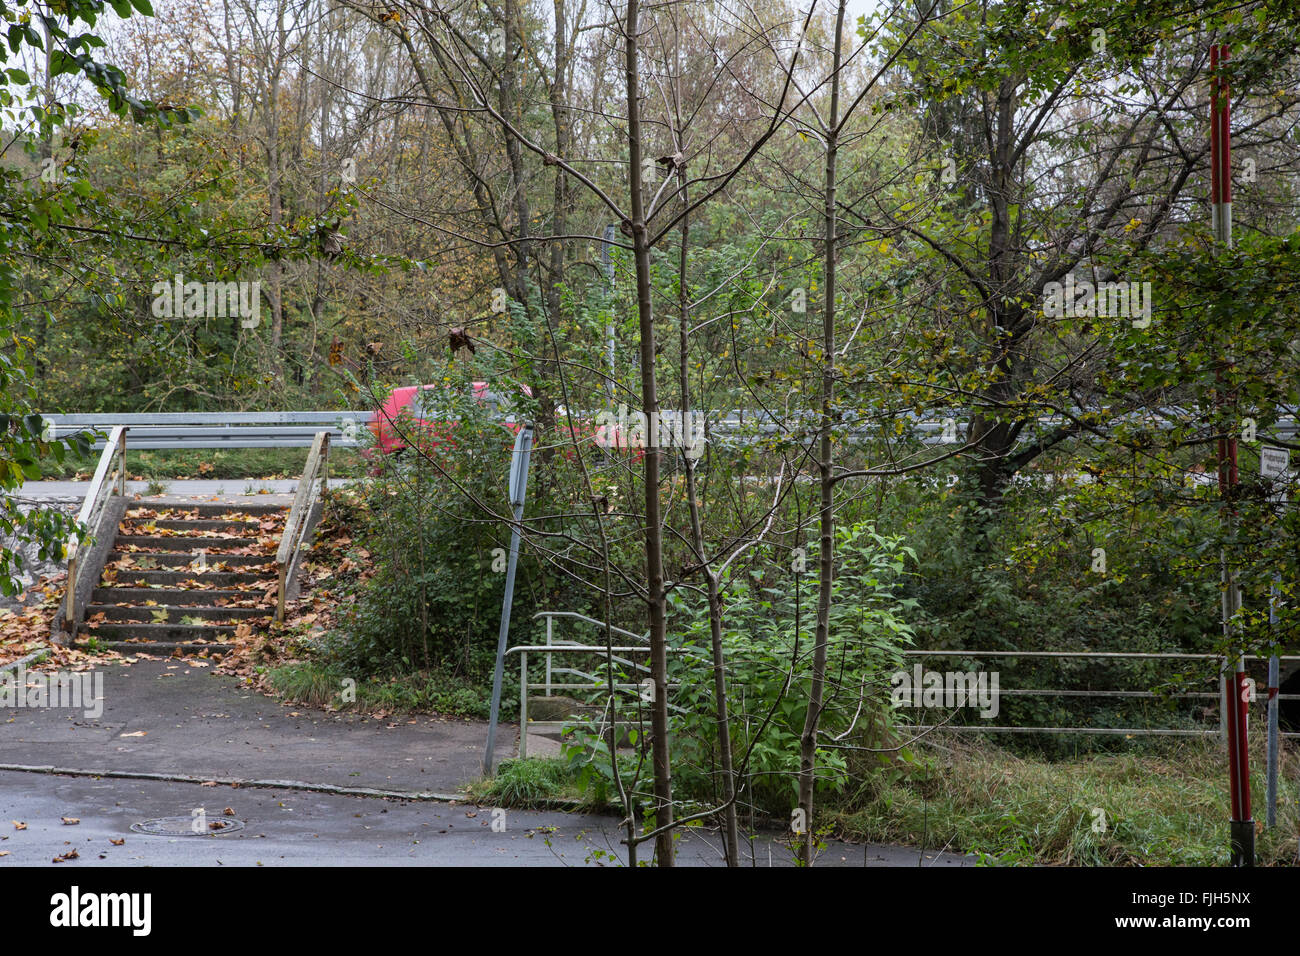 neglected scrubby area at city periphery with stair and entrance to pedestrian underpass, arterial road, red car - Stock Image